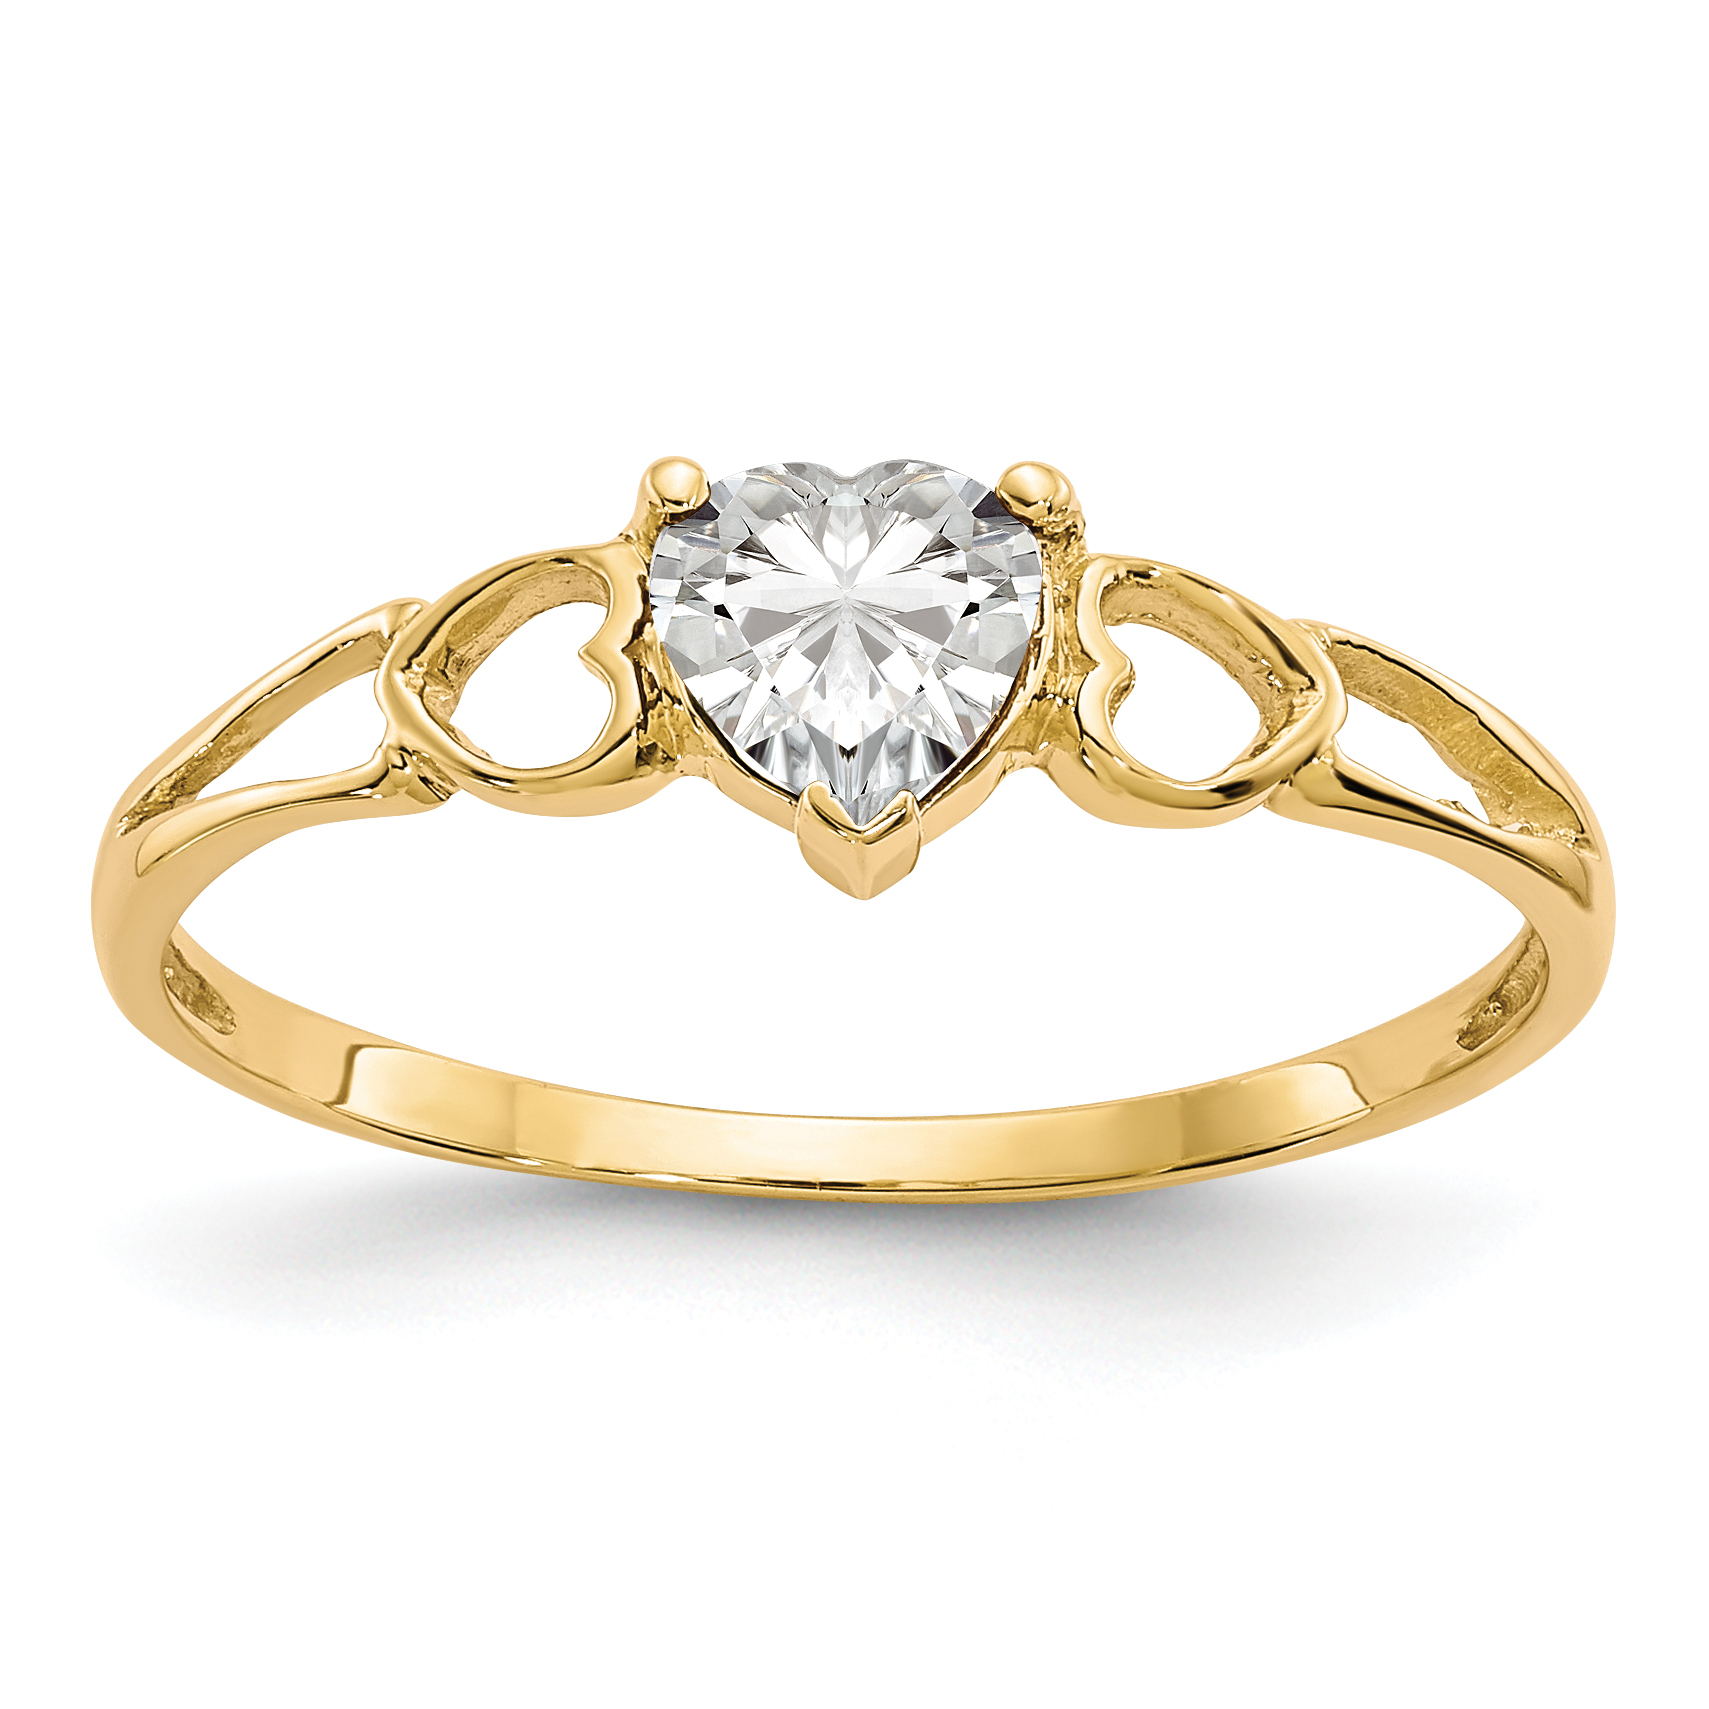 14k Yellow Gold White Topaz Birthstone Band Ring Size 7.00 Stone April Fine Jewelry Gifts For Women For Her - image 2 of 2